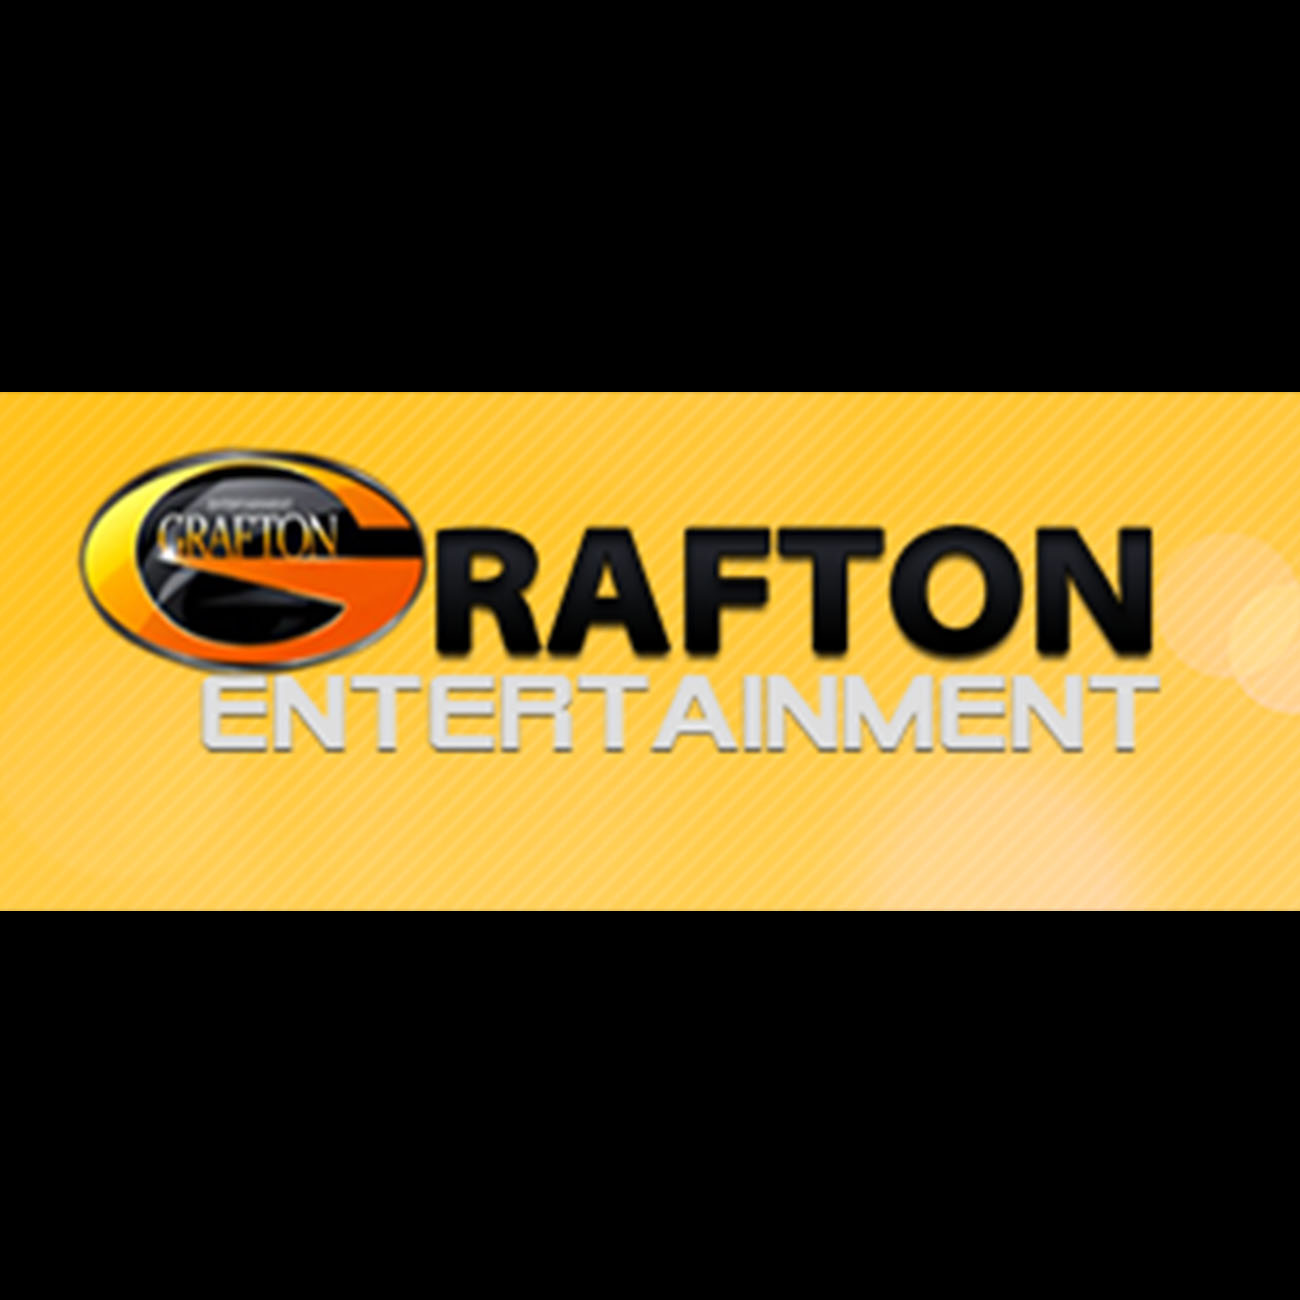 GRAFTON ENTERTAINMENT